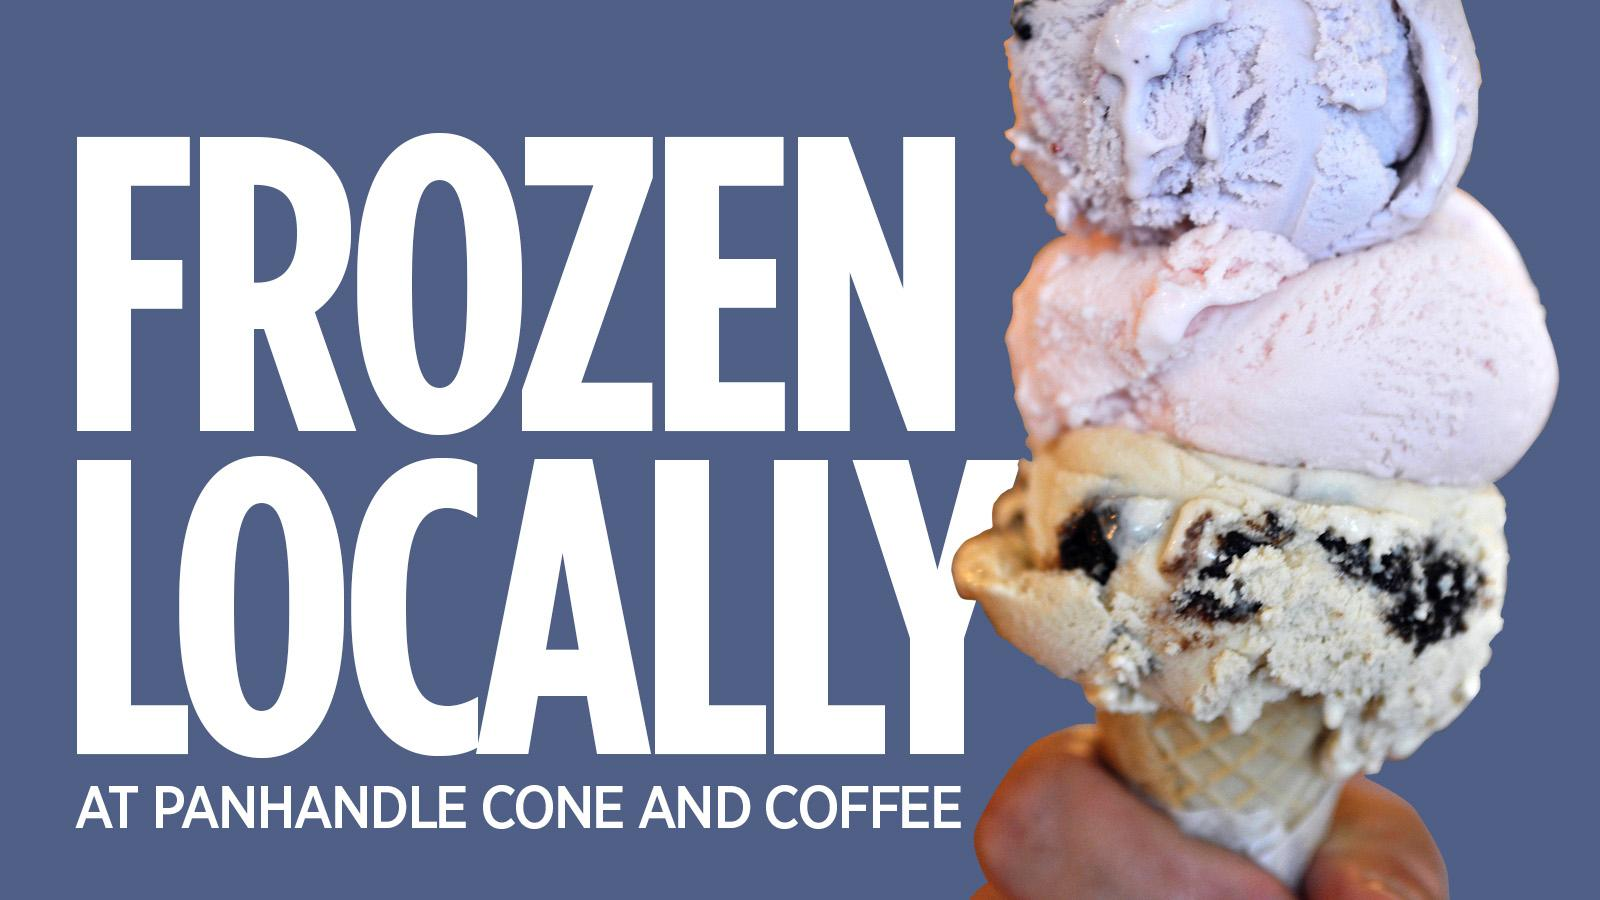 Frozen Locally Panhandle Cone And Coffee Preaches Quality Love